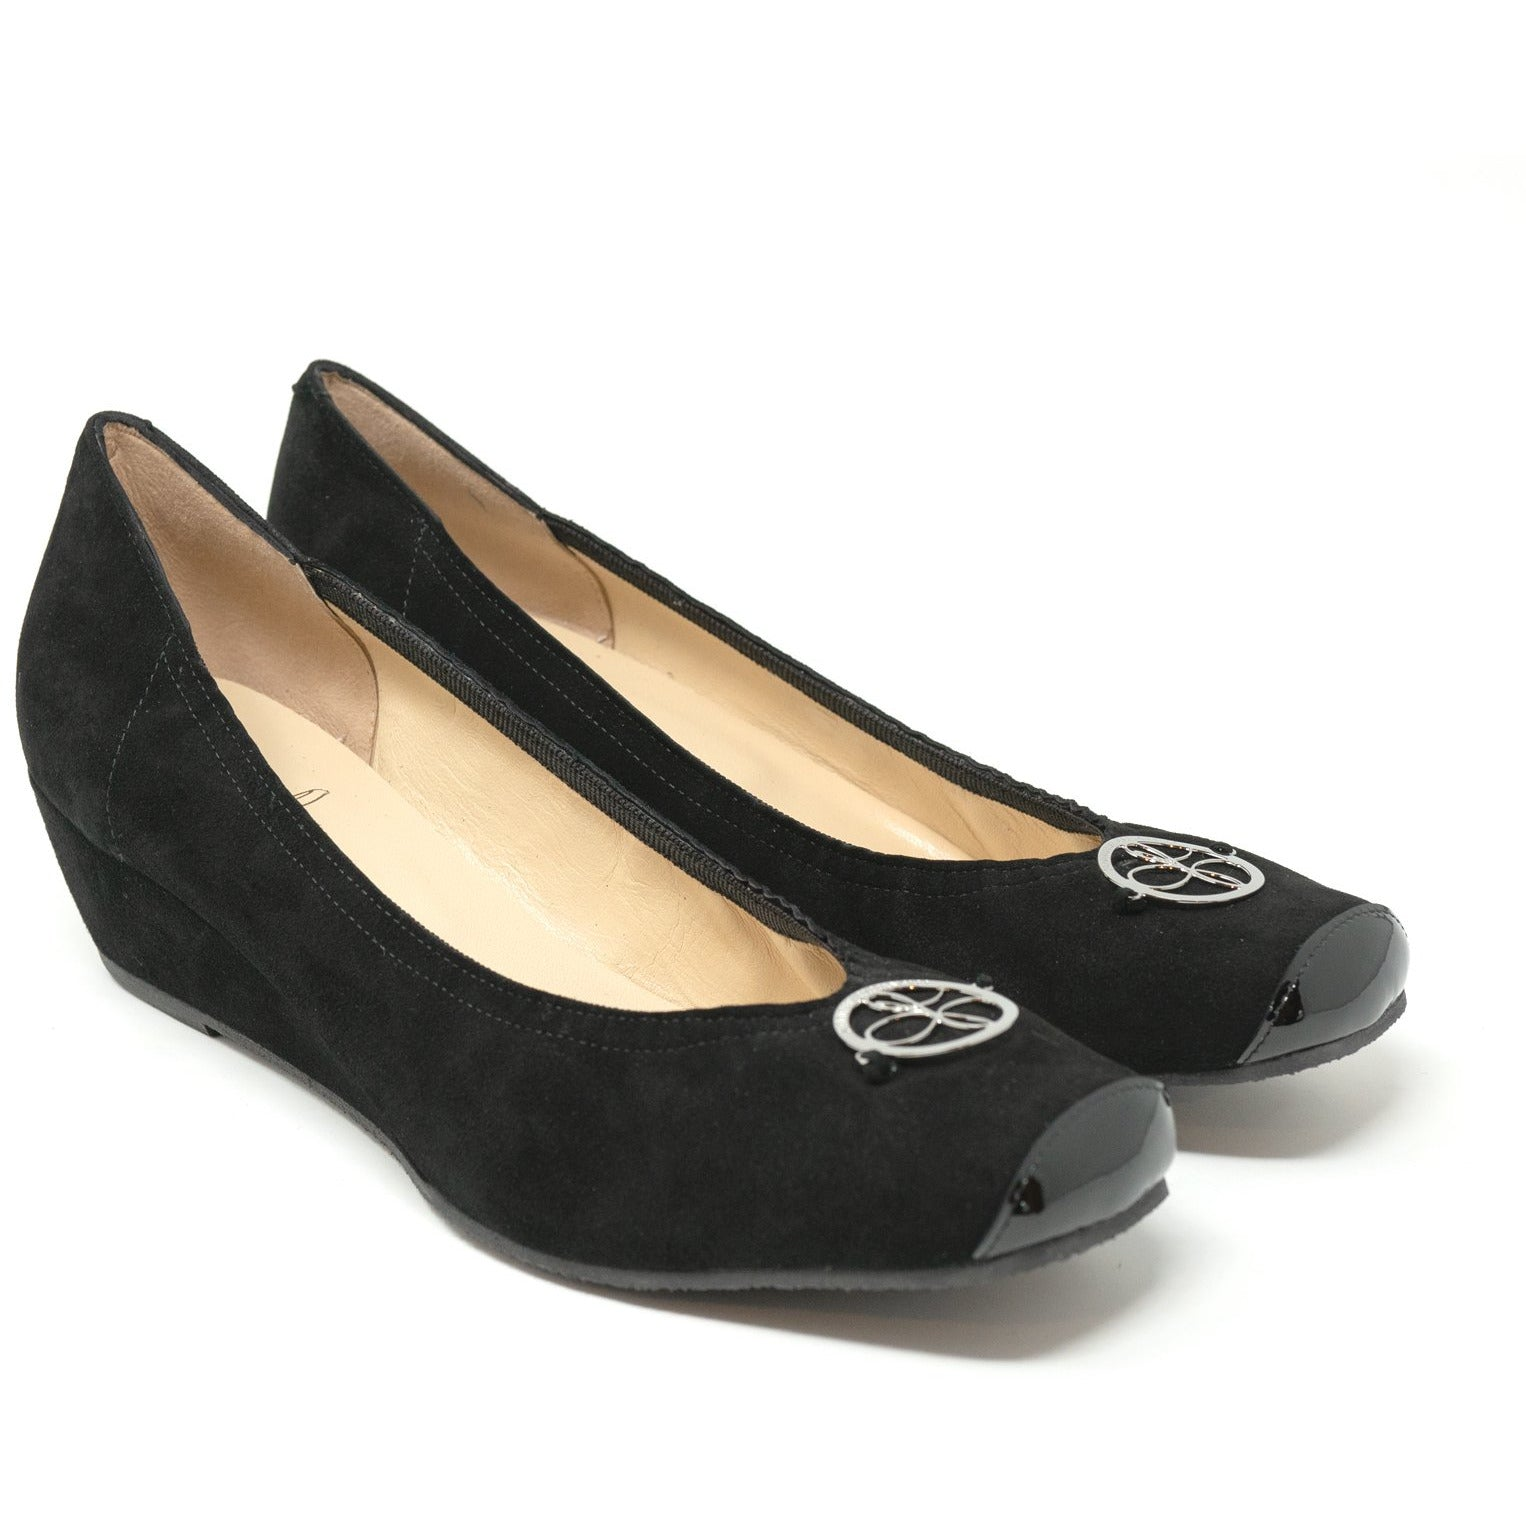 Women Ballerina Shoes with Wedge in Suede Black - Jennifer Tattanelli